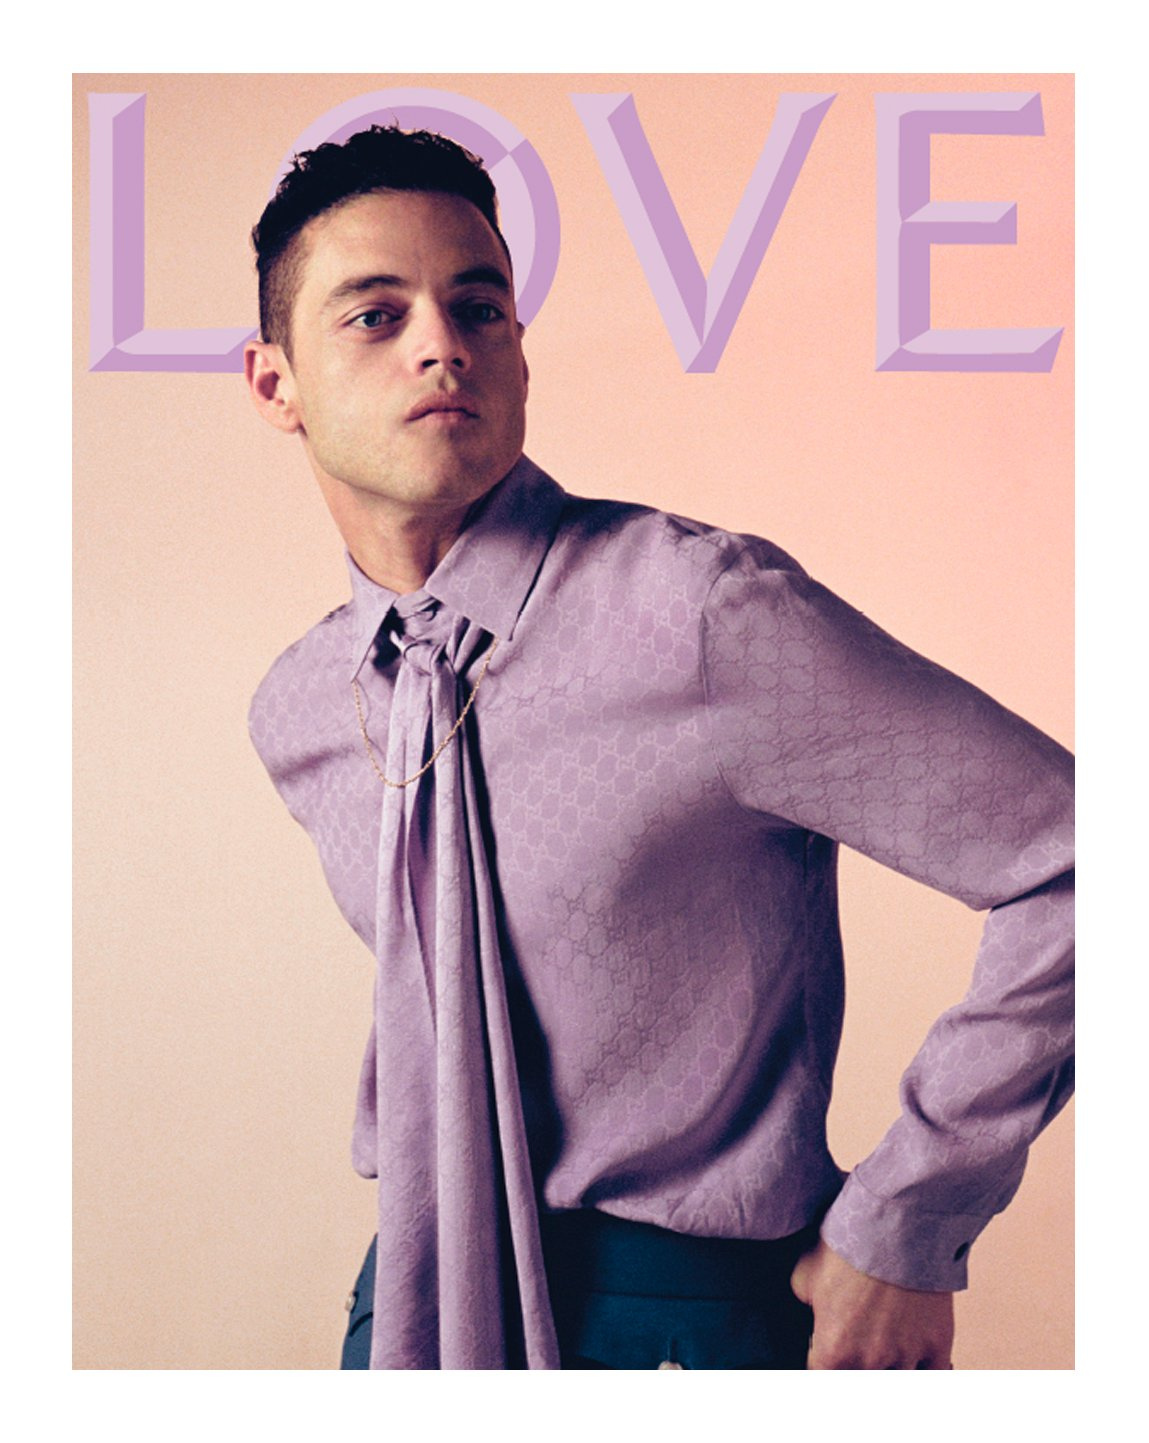 Featured on the cover of @THELOVEMAGAZINE issue 22 @ItsRamiMalek in a men's GG motif silk neck tie shirt by #AlessandroMichele. #GucciEditorials  Photography: #SteveMackey & #DouglasHart Creative Director and Fashion Editor: @kegrand https://t.co/816P2CaUOp